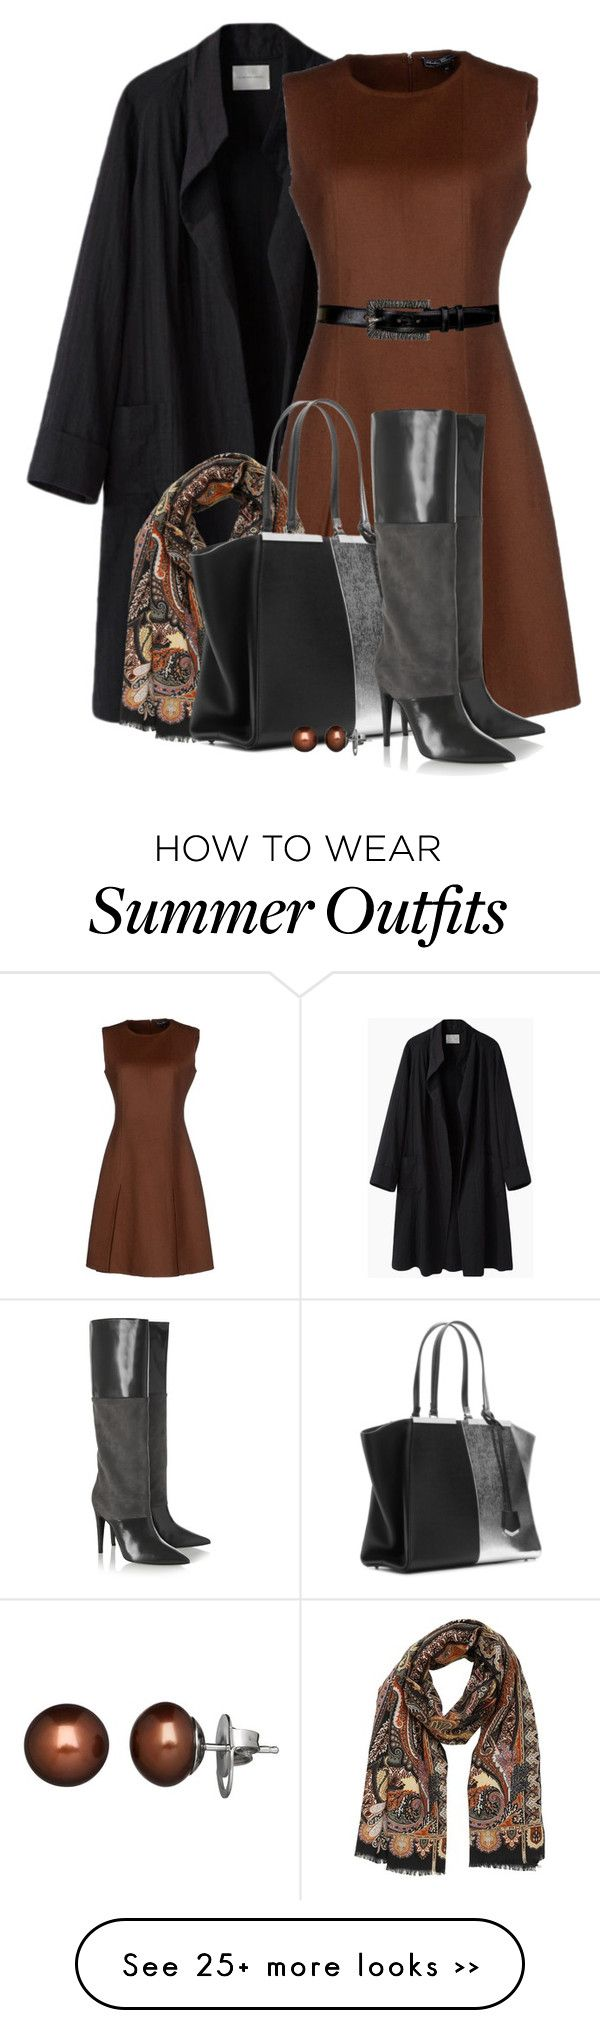 """""""Short Dress & Tall Boots for Fall"""" by brendariley-1 on Polyvore featuring…"""